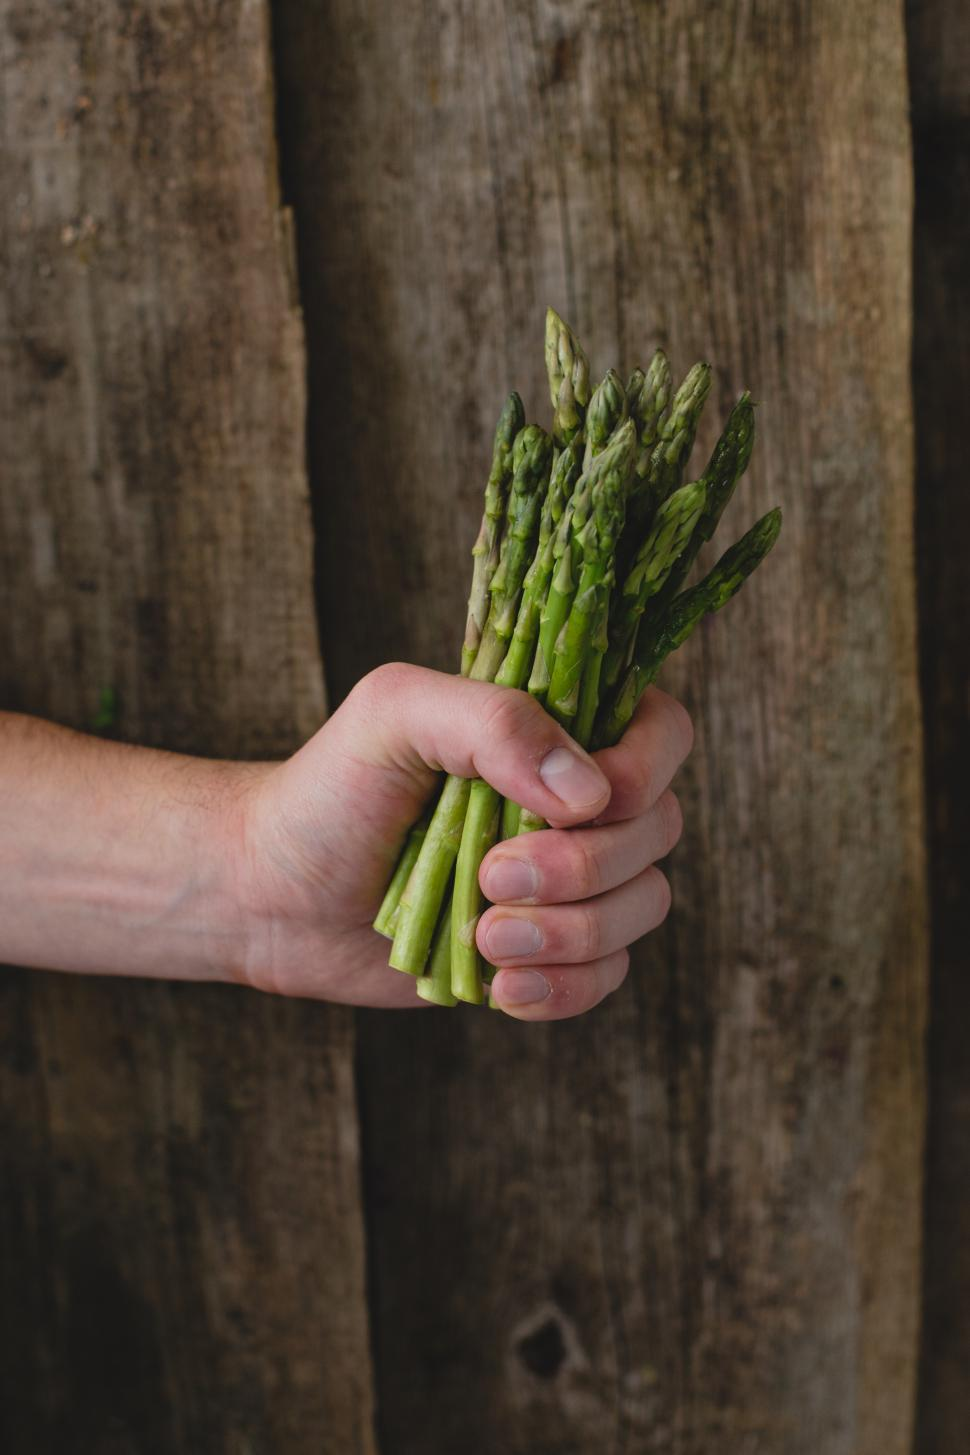 Download Free Stock HD Photo of Man holding asparagus Online